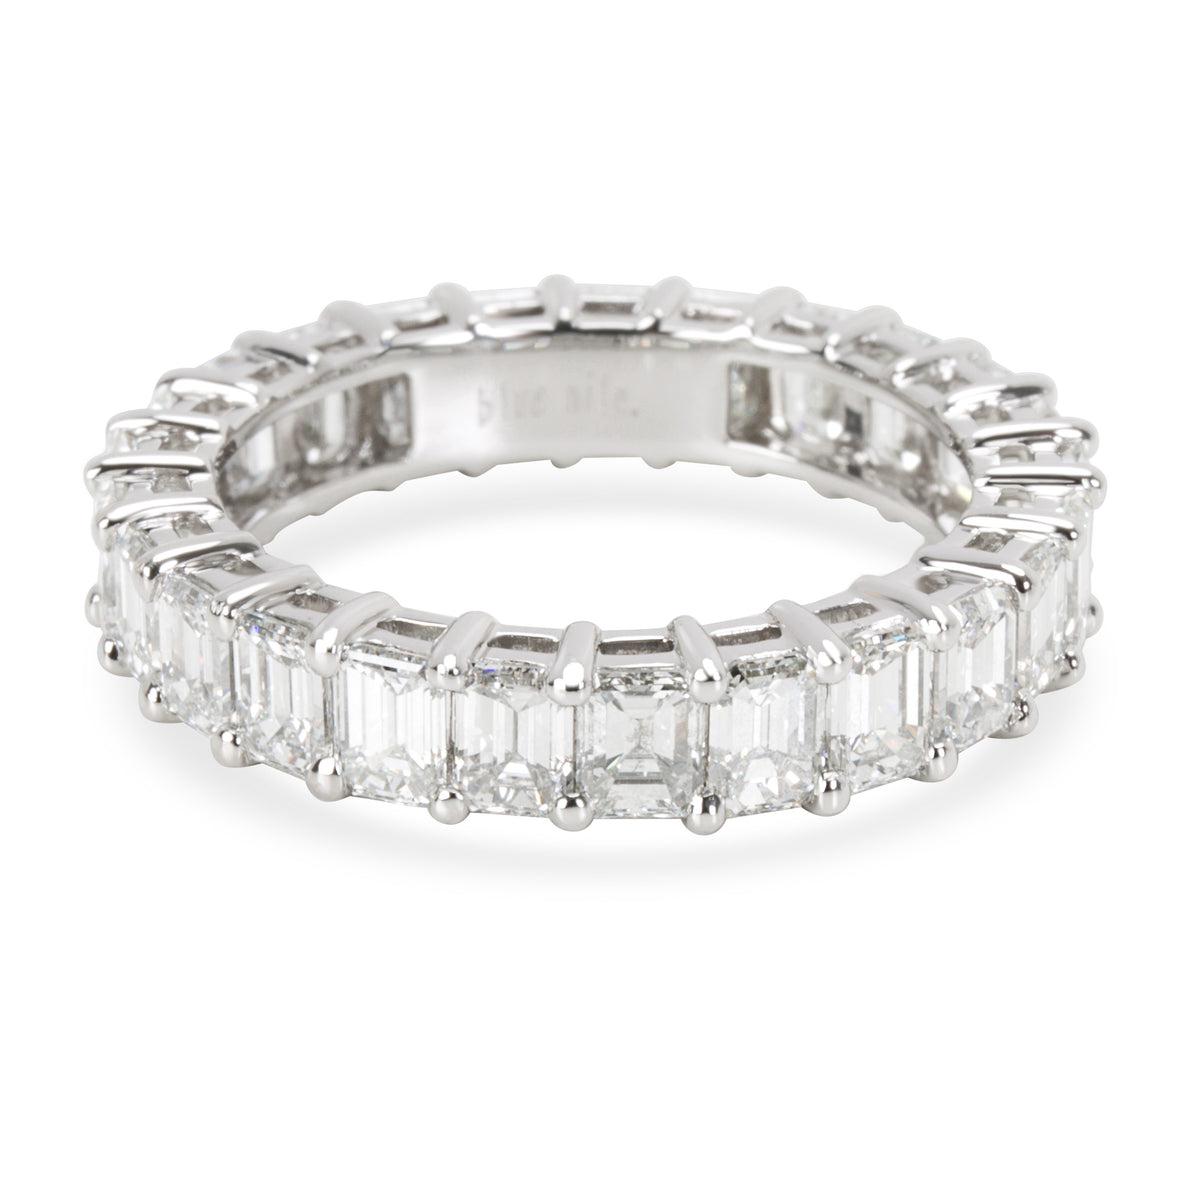 Blue Nile Emerald Diamond Eternity Band in Platinum G VS2 4.41 CTW